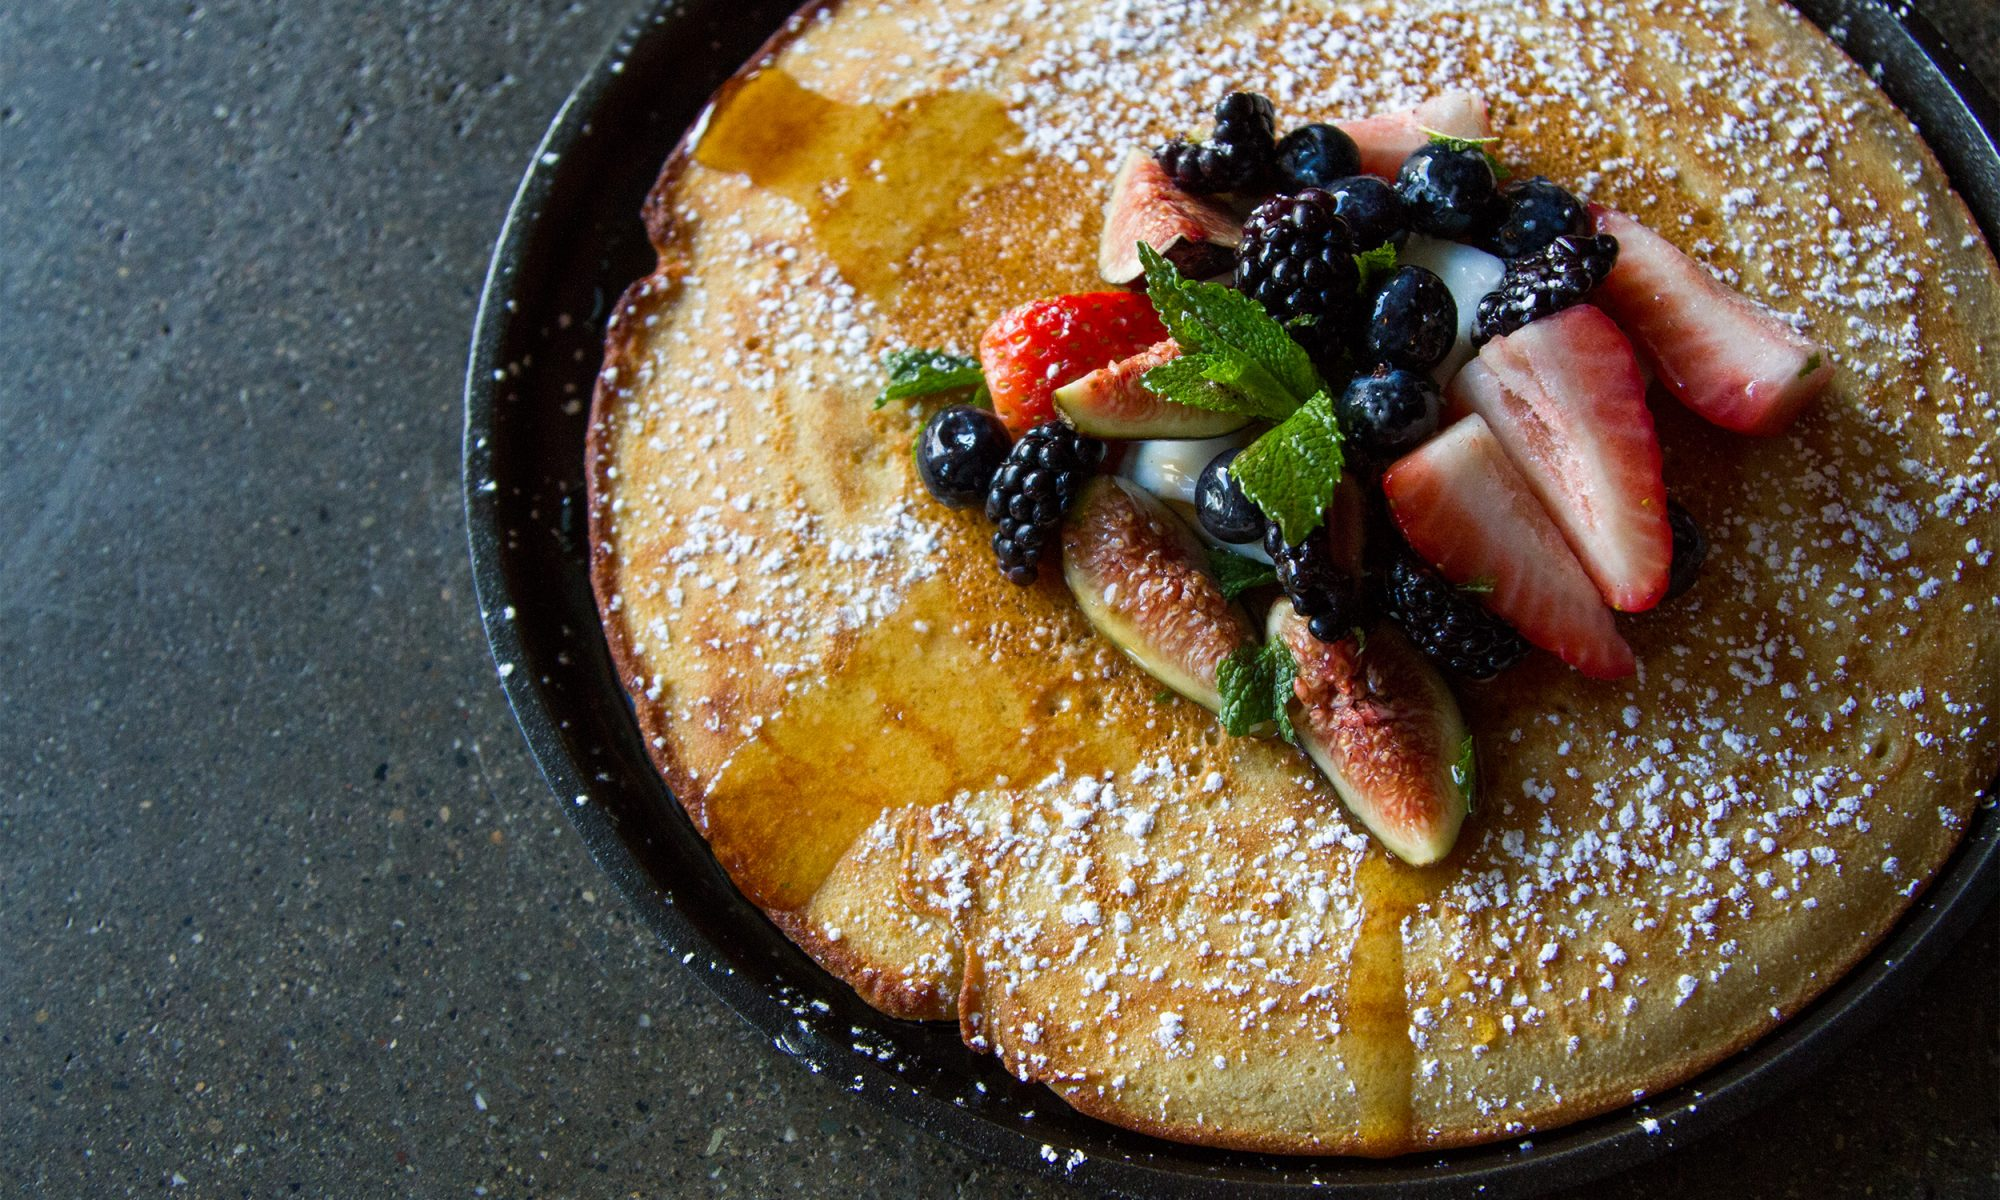 EC: Italian-Style Semolina Pancakes That'll Make Your Nonna Proud